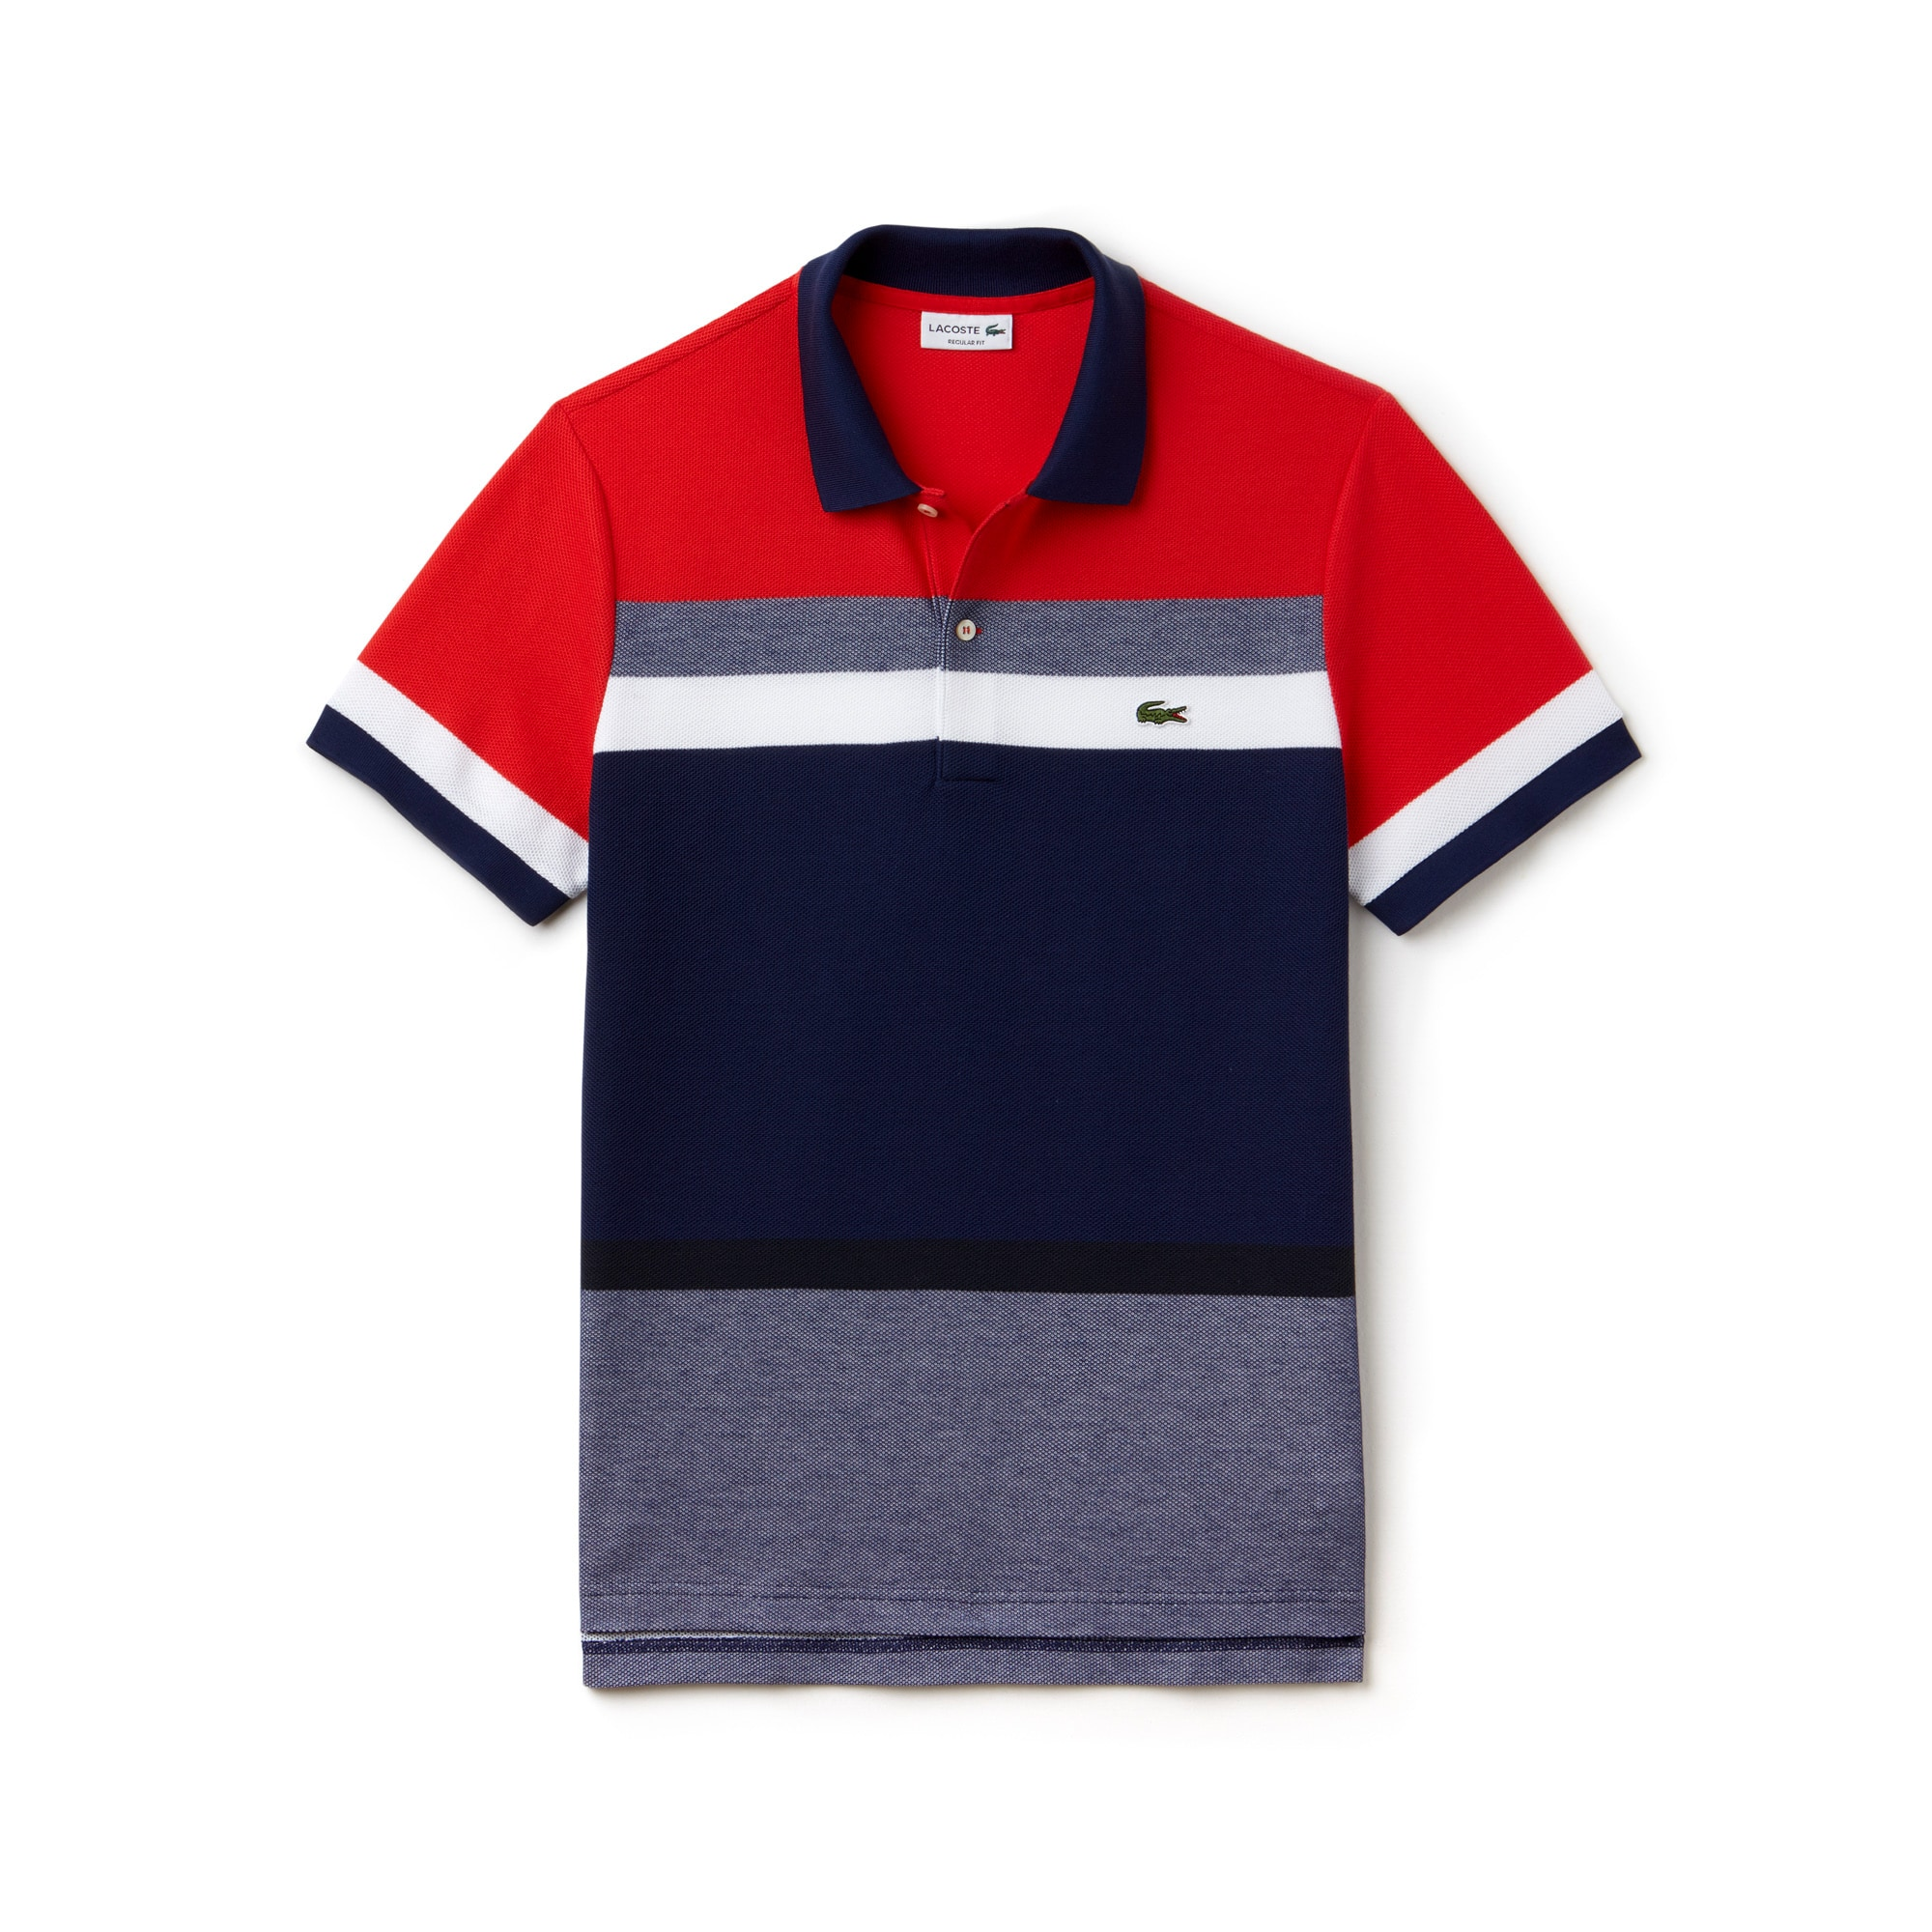 Men's Regular Fit Piqué Colorblock Polo Shirt